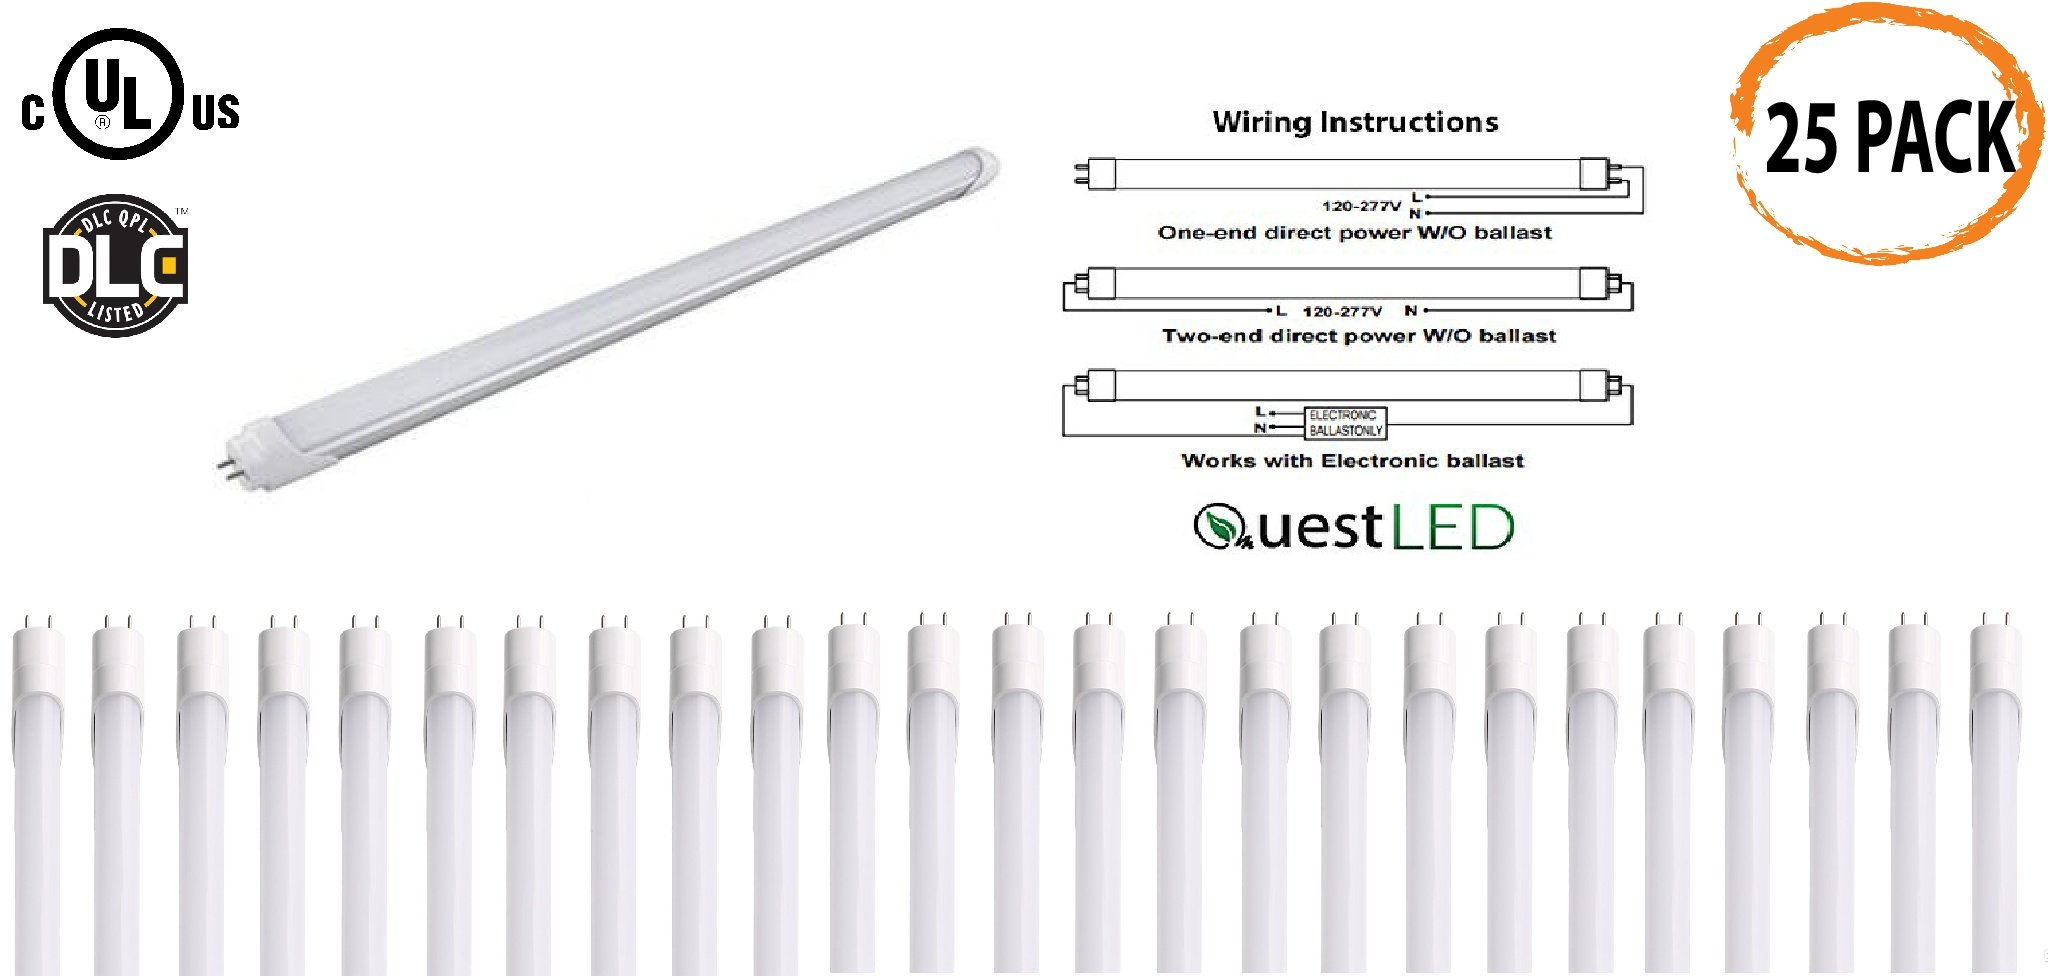 LED T8, T10, T12 Tube Light 4FT; 15W (36w Equivalent) 120-277V, Works WITH or WITHOUT Ballast, Single or Double Ended Powered; 1,950 Lumens; UL/DLC (Warm White 3000K)- 25 PACK